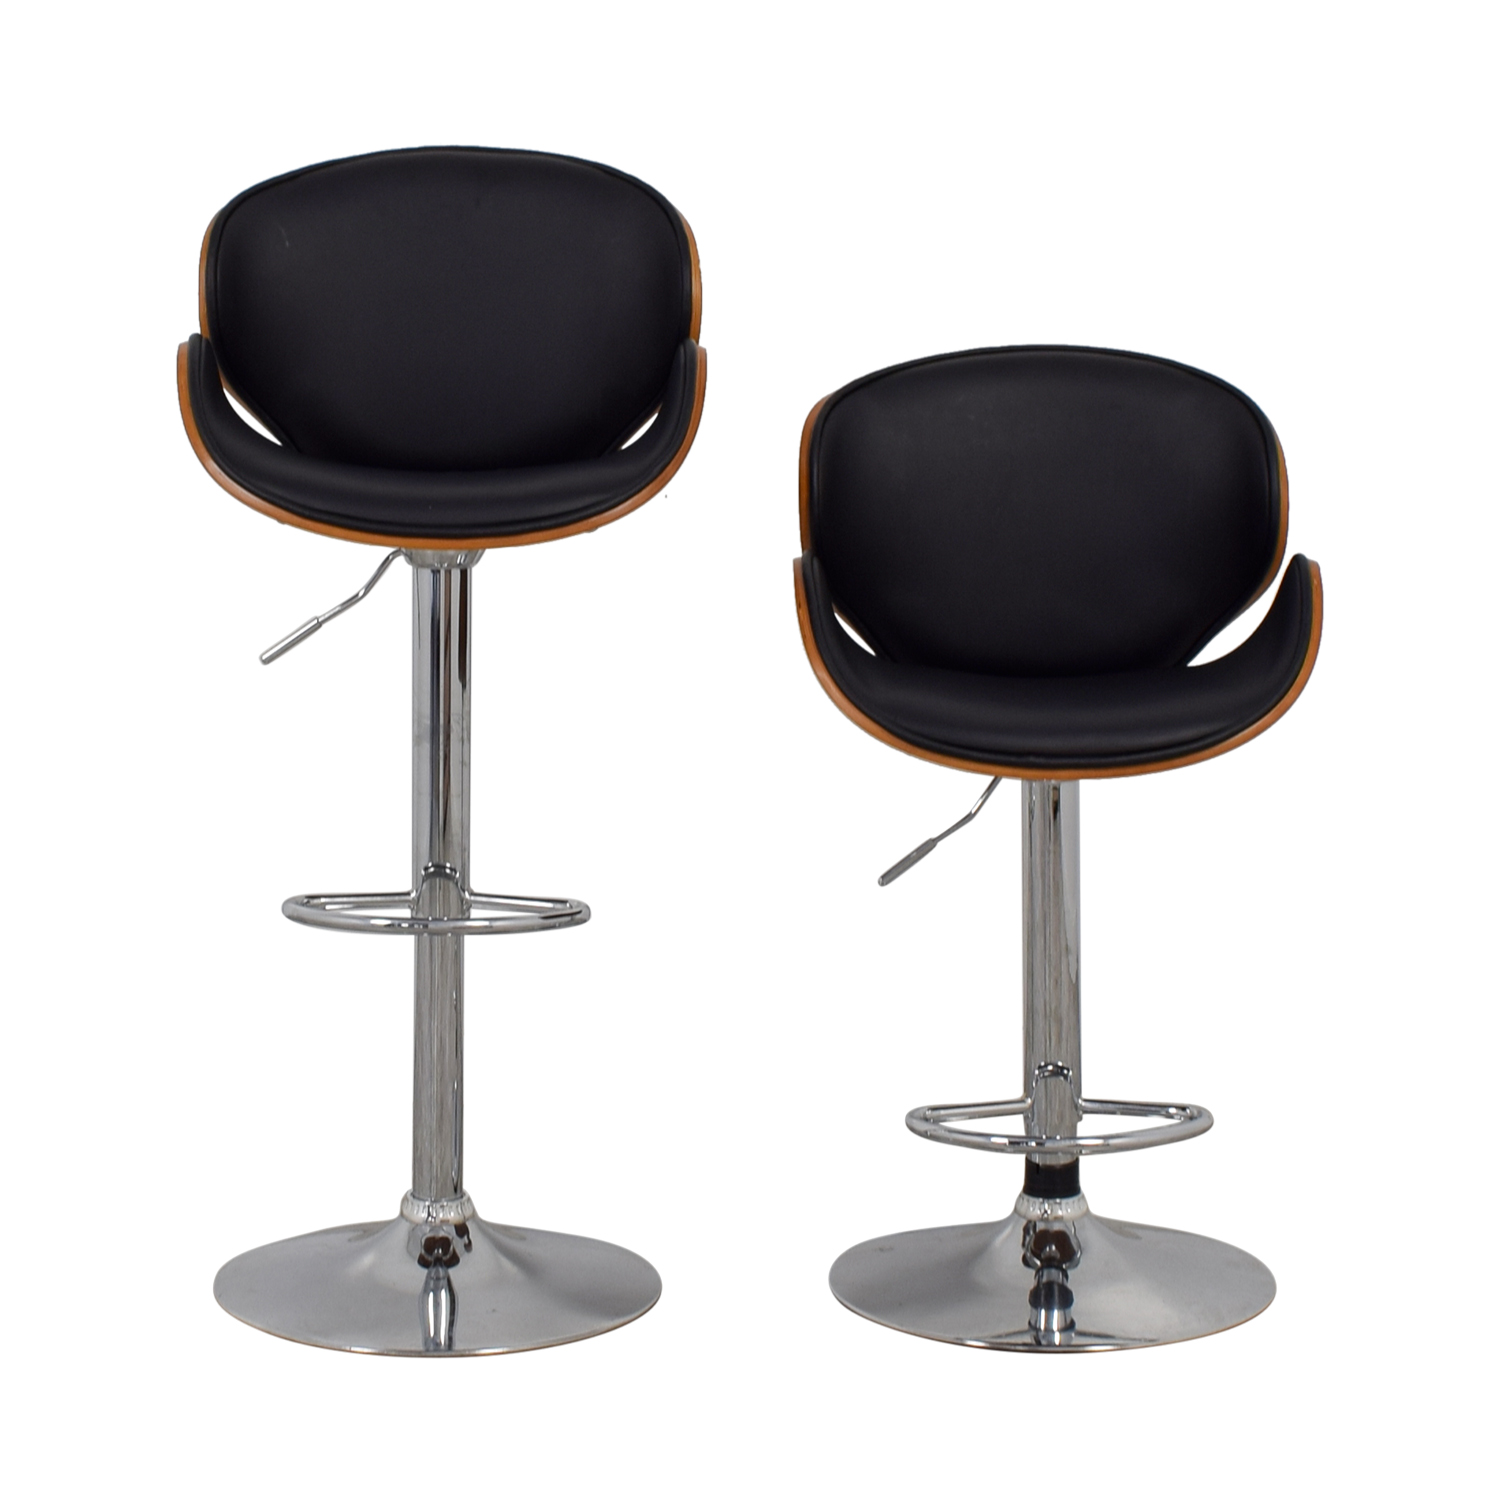 shop Carson Carrington Mid-Century Black and Wood Swivel Stools Carson Carrington